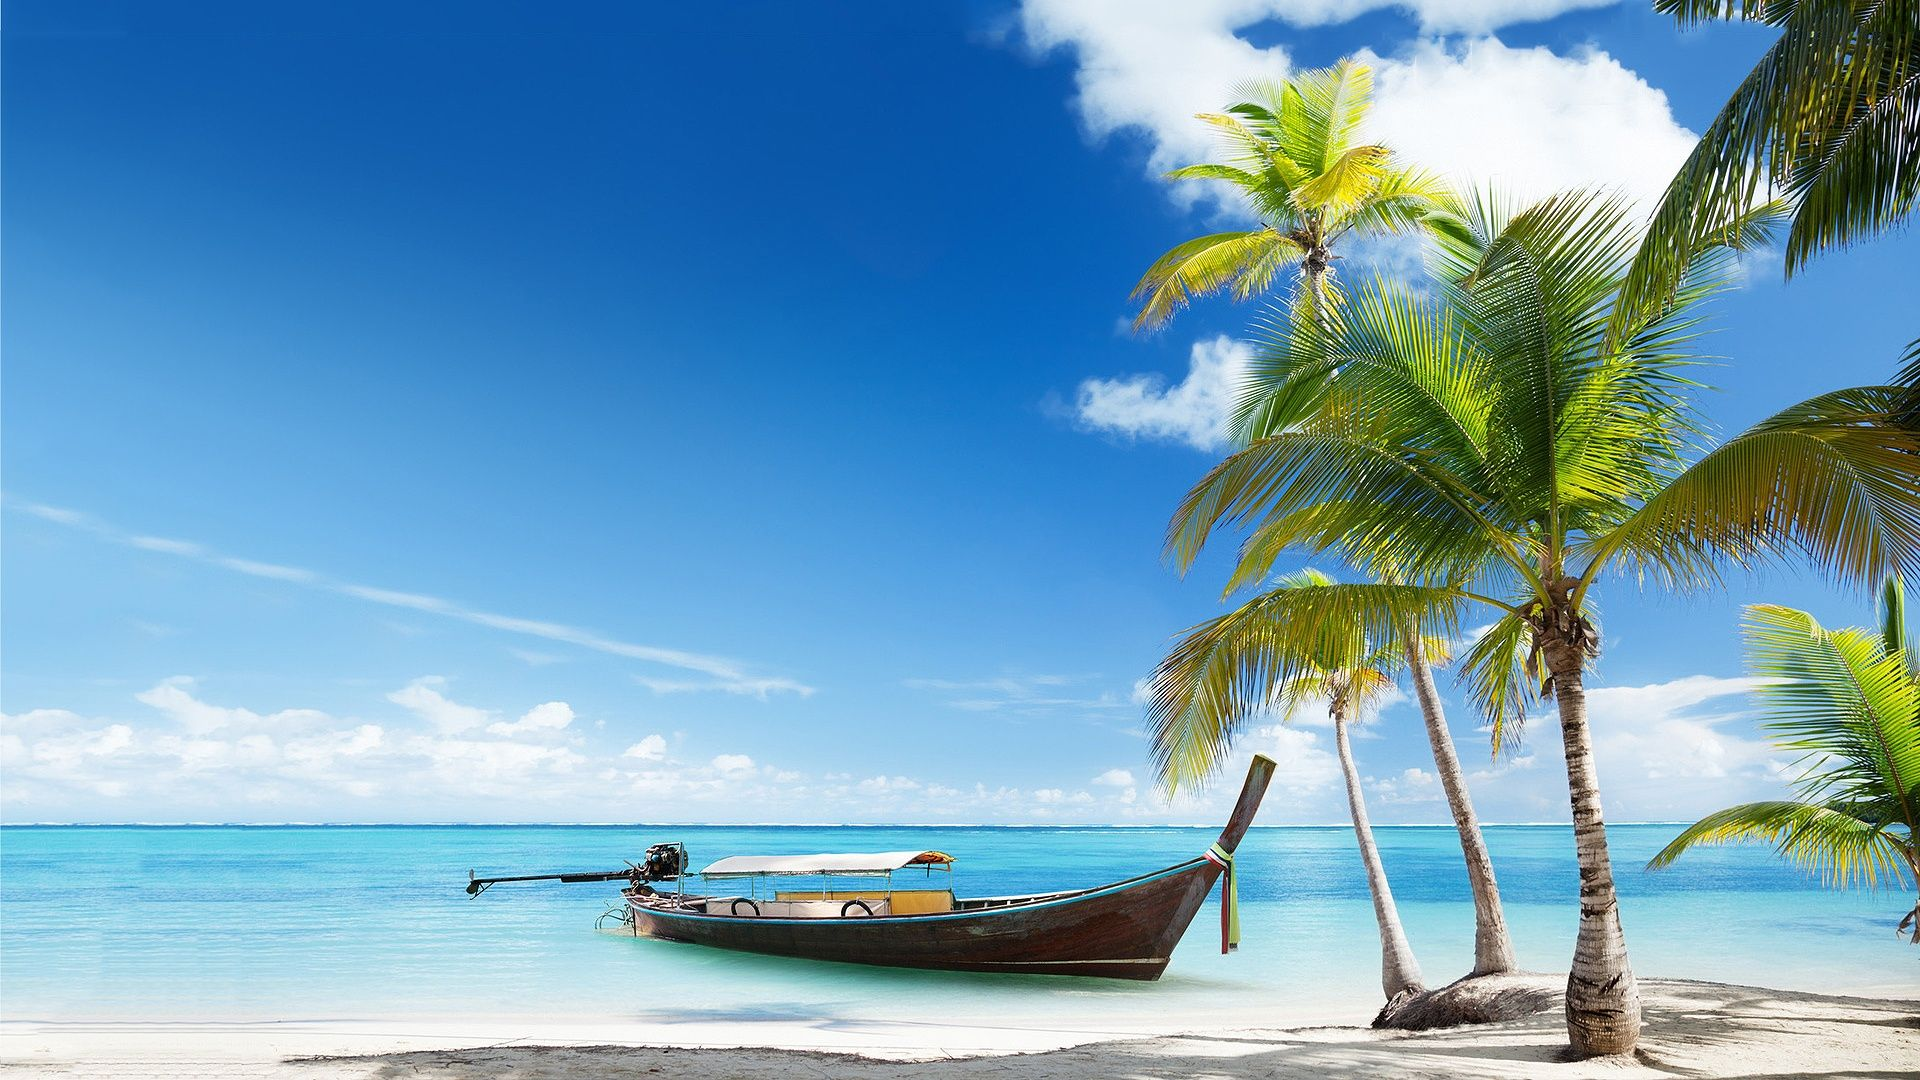 Beach Quotes Wallpaper: ... Above Boat Tropical Beach - Funny